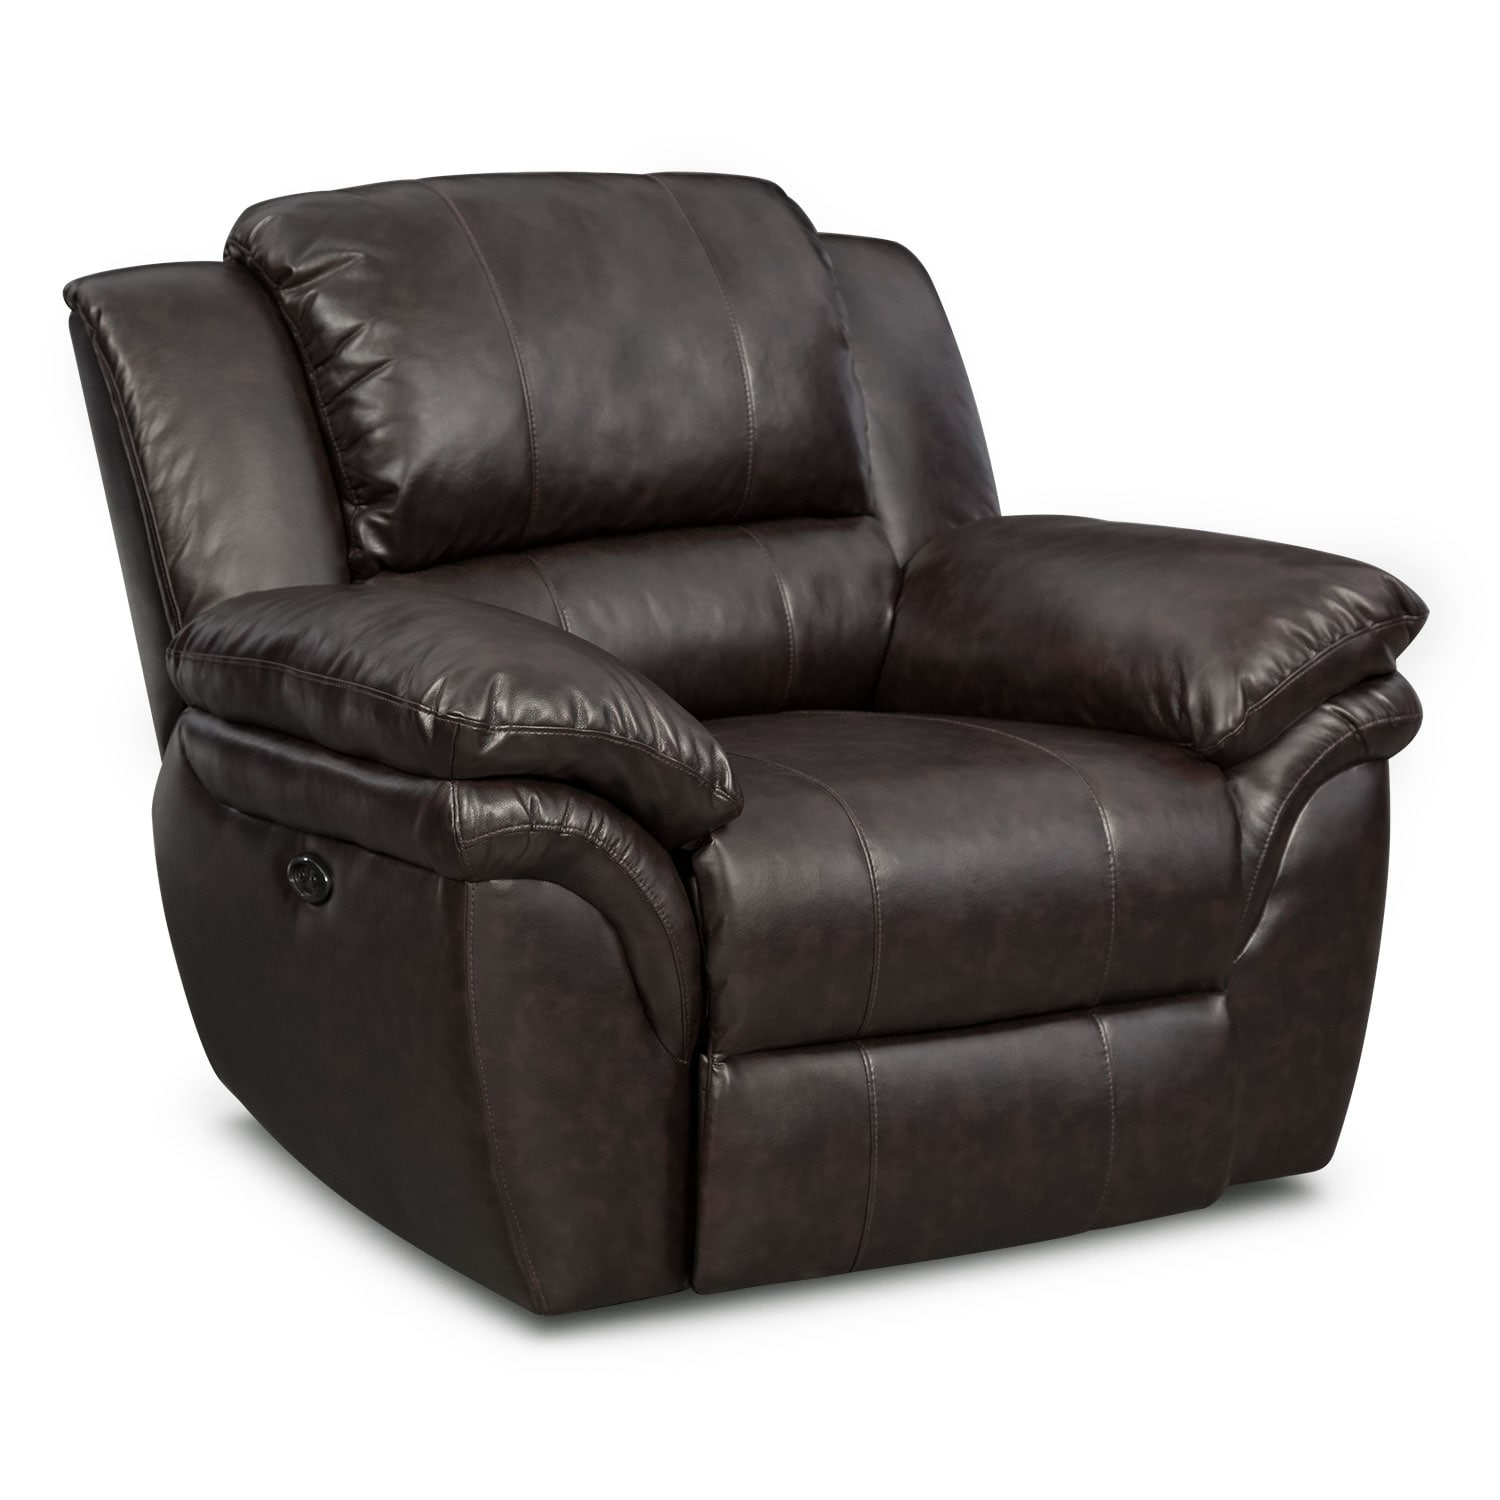 Living Room Furniture - Omni Brown Power Recliner